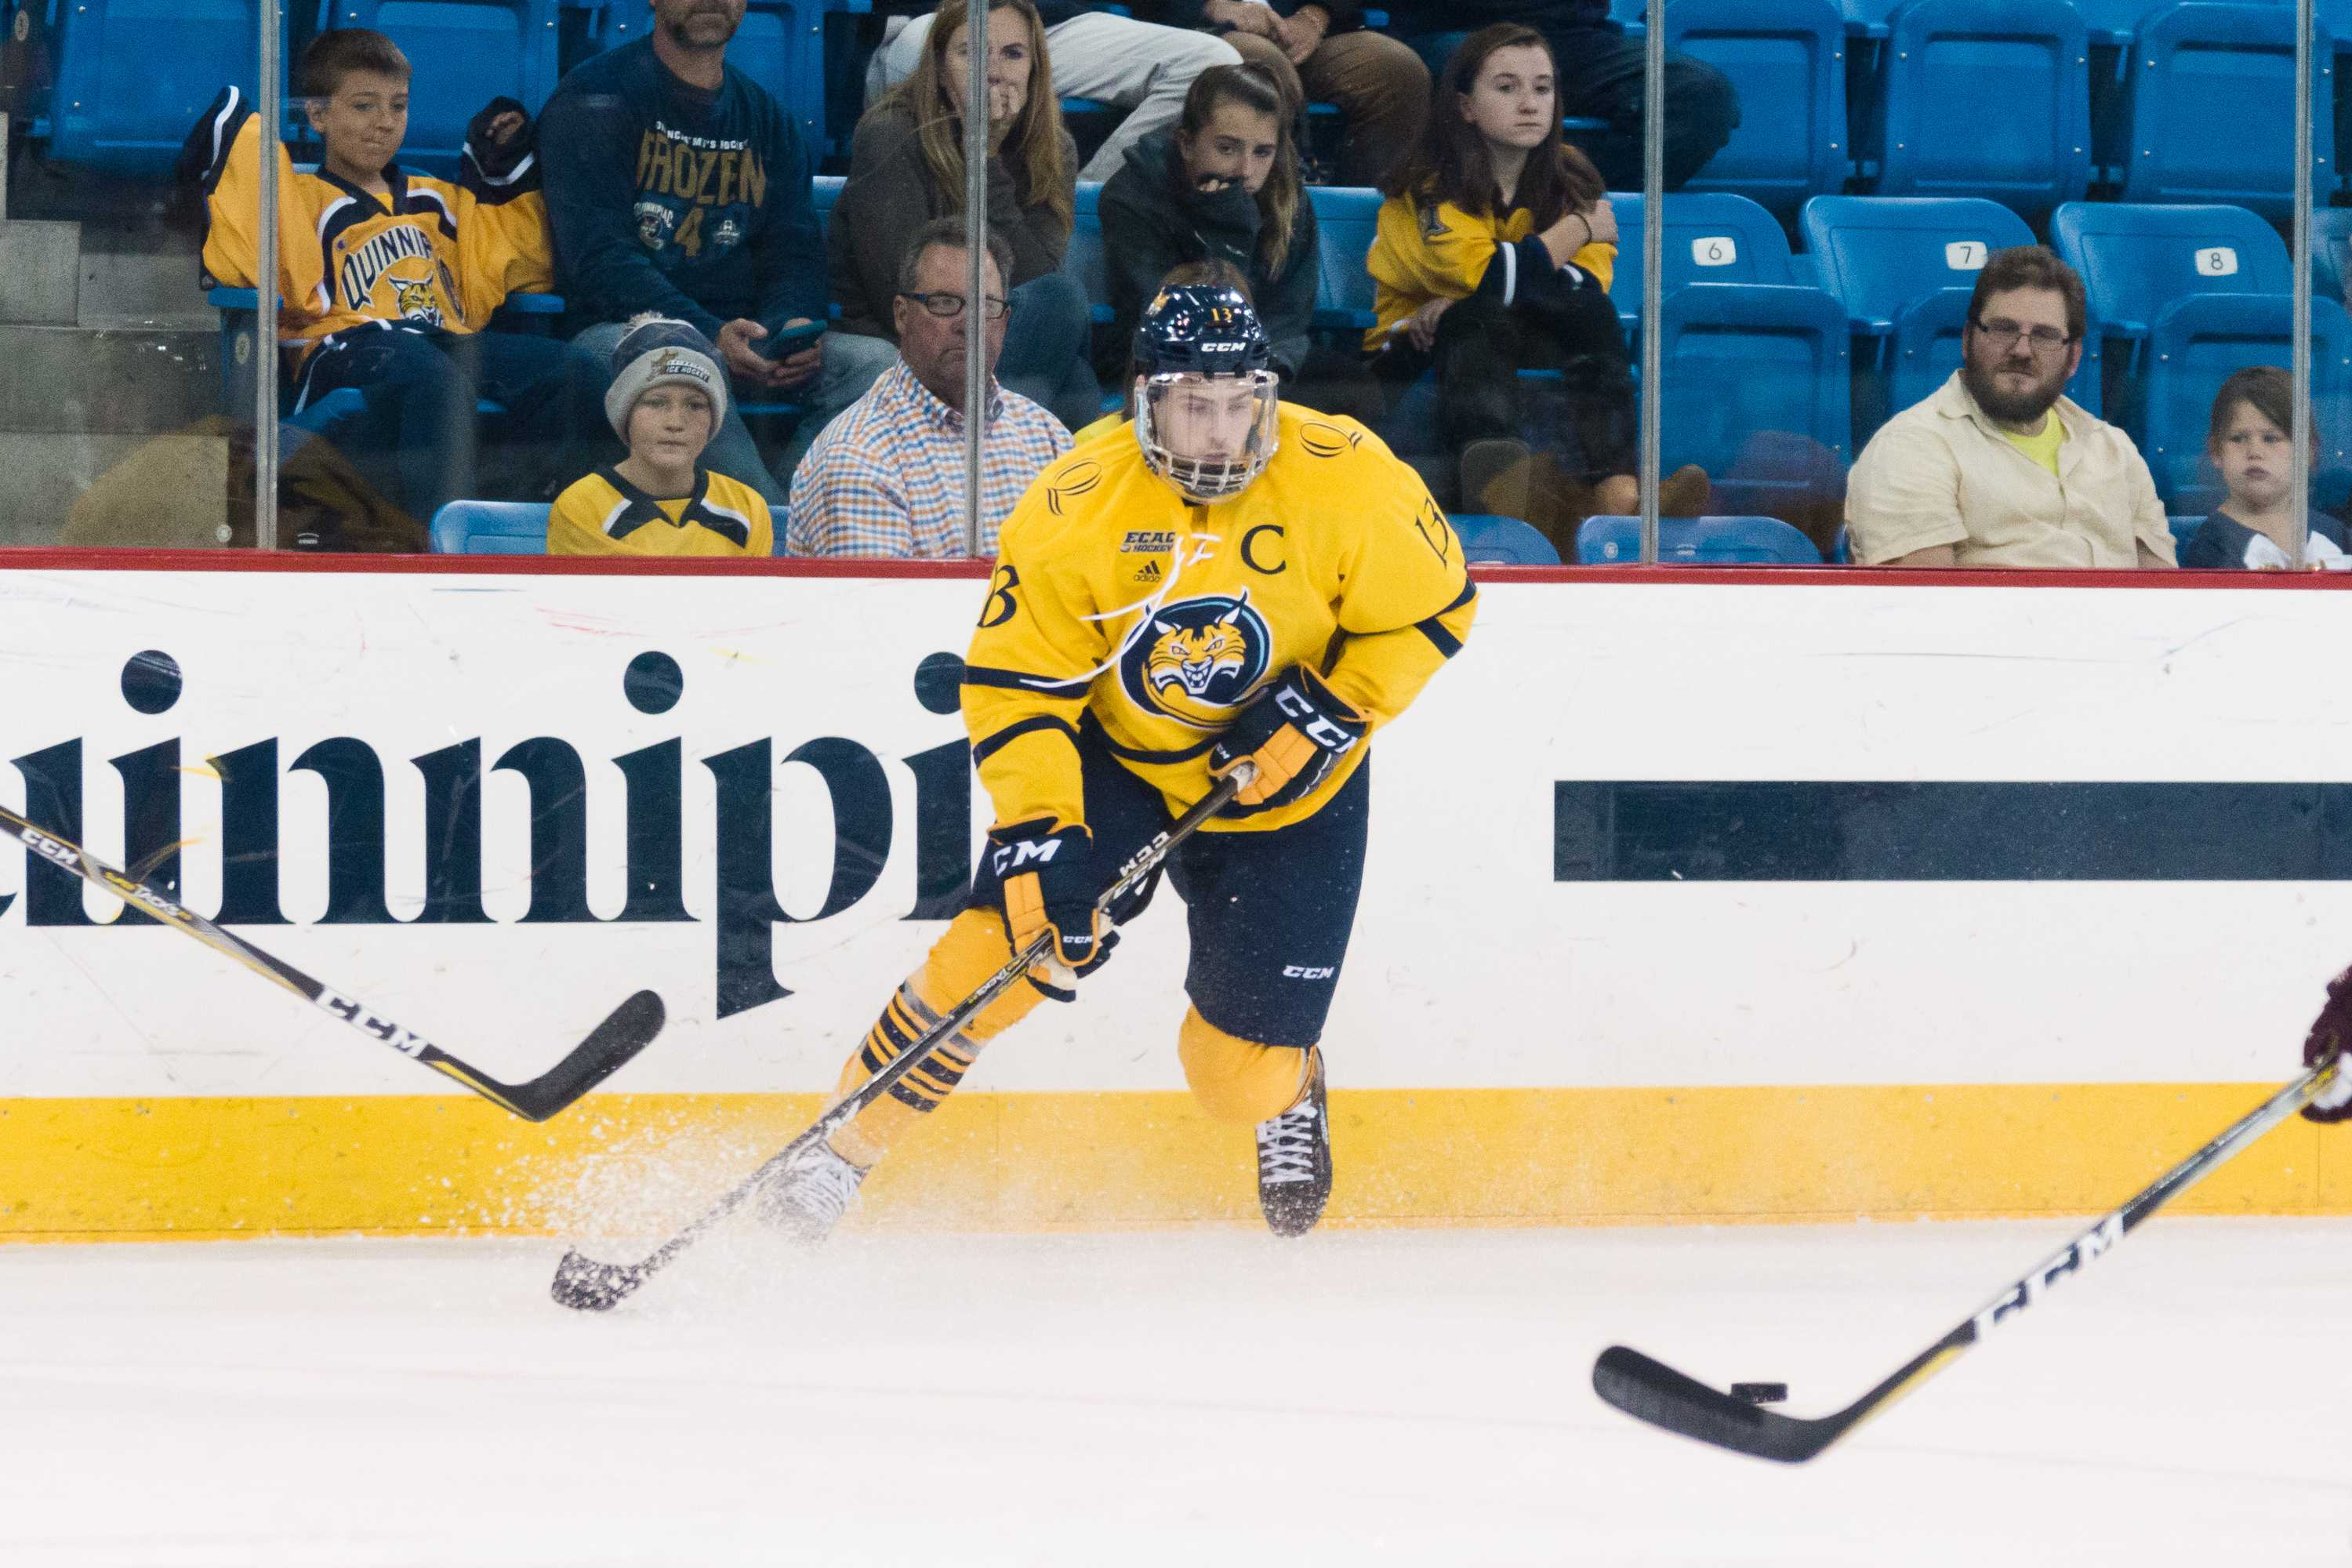 Quinnipiac men's ice hockey beats St. Mary's 3-2 in exhibition game